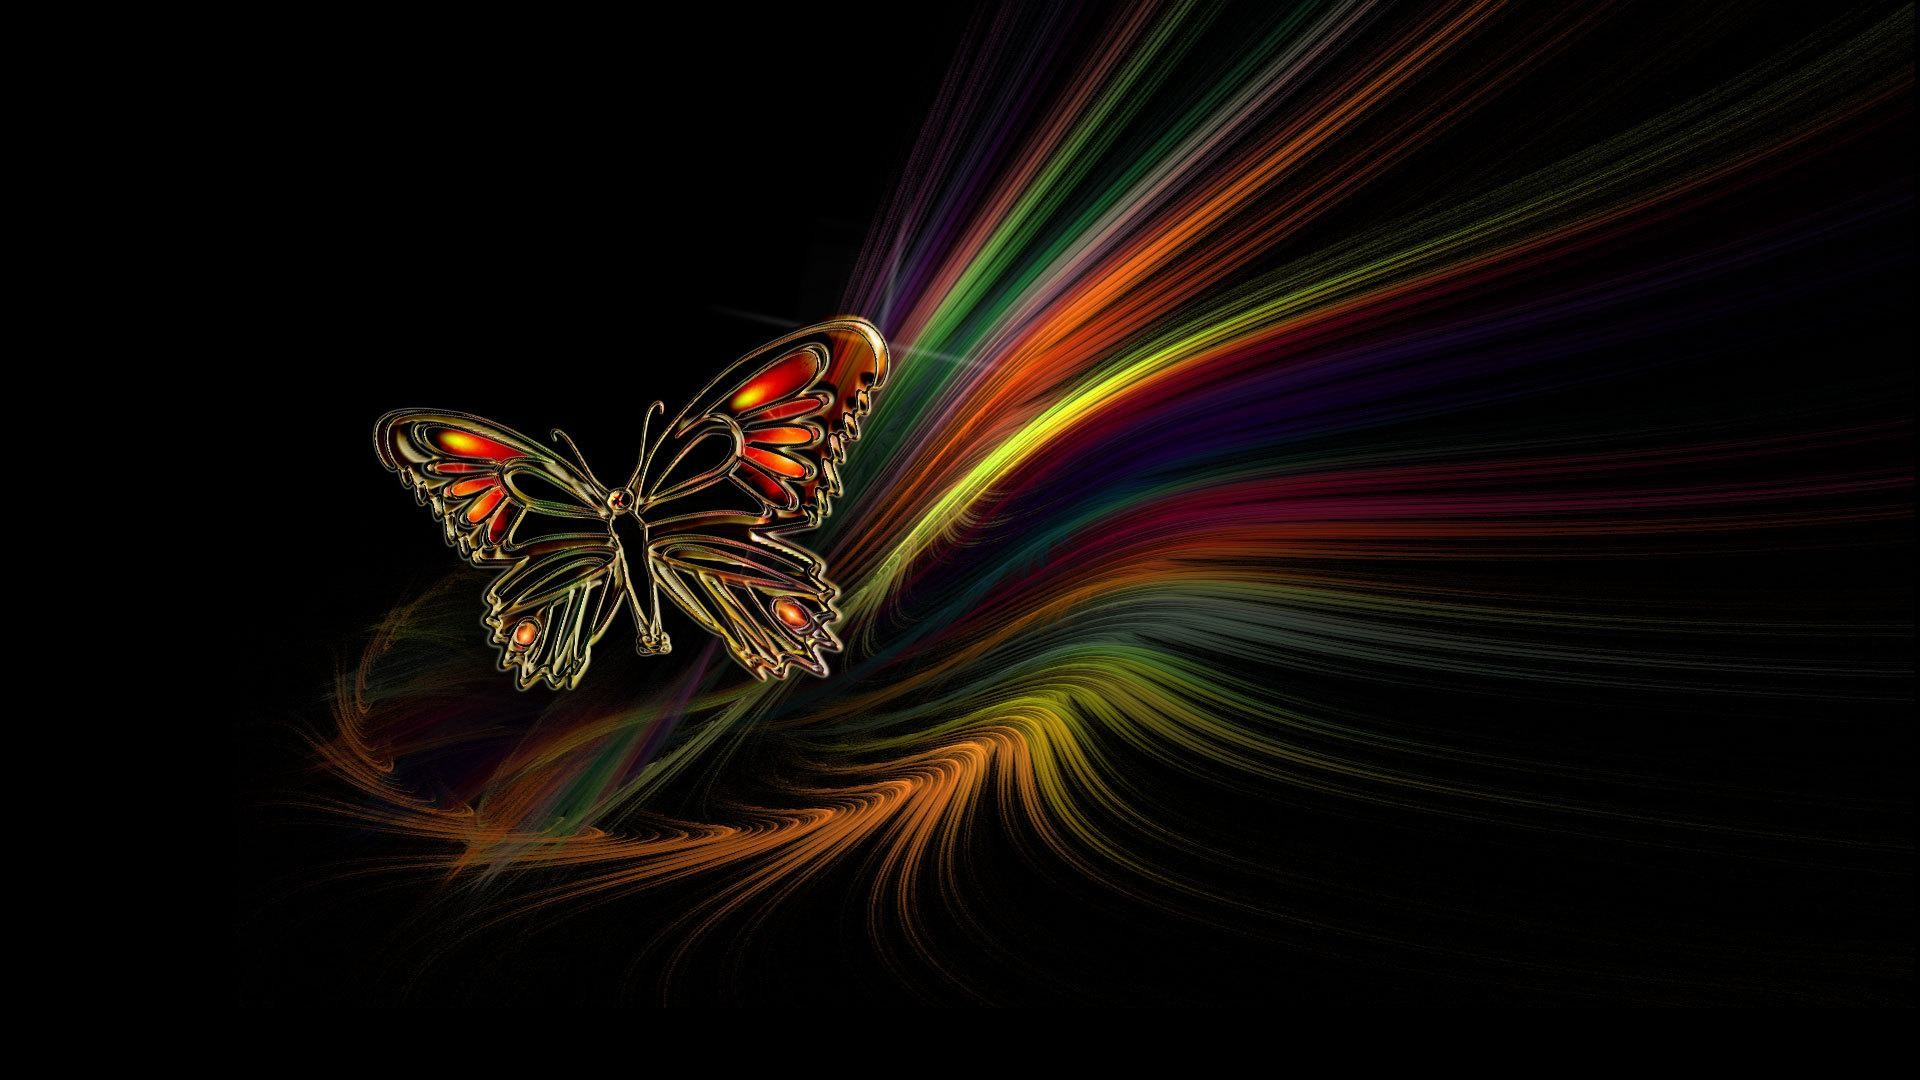 1920x1080 - Pretty Butterfly Backgrounds 11